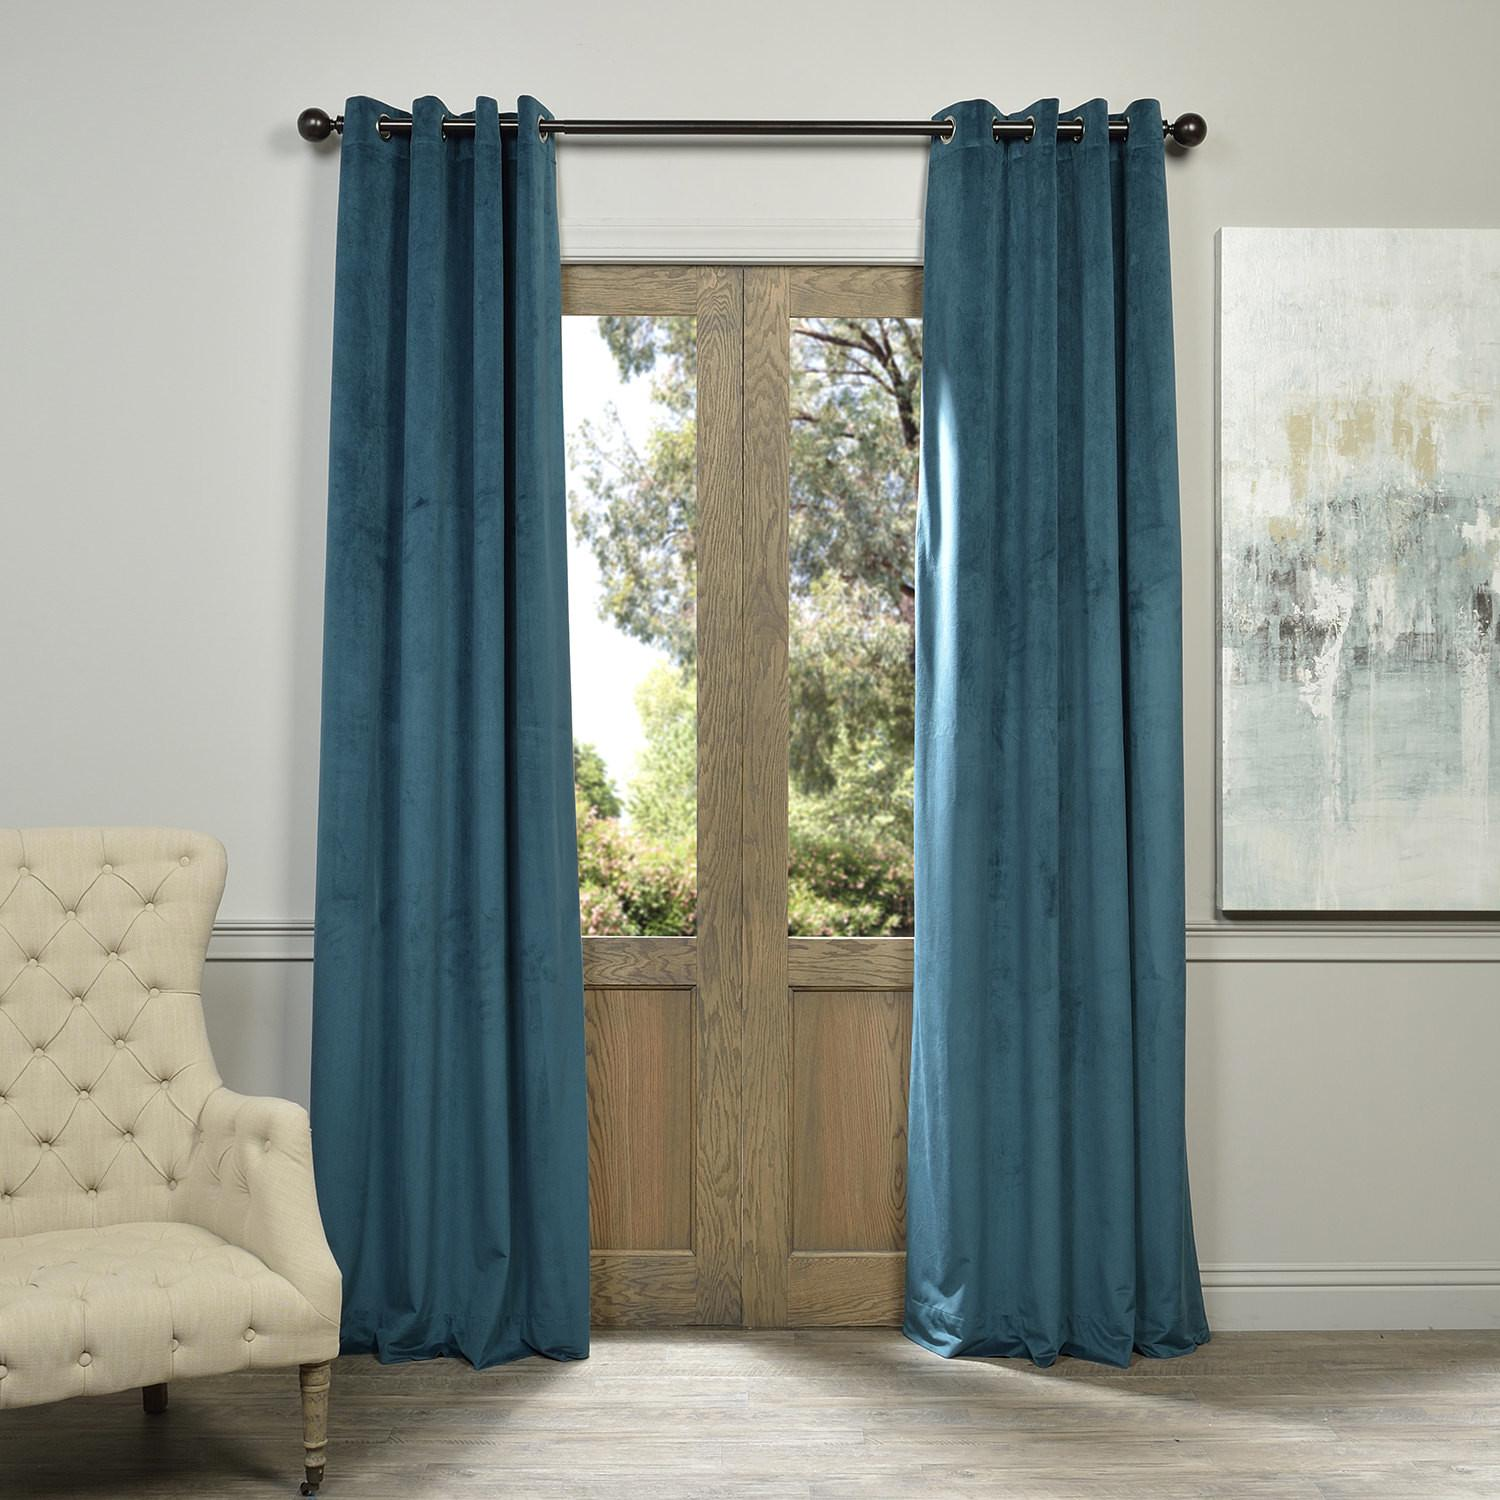 Signature Everglade Teal Grommet Blackout Velvet Curtains Decoratorist 36759